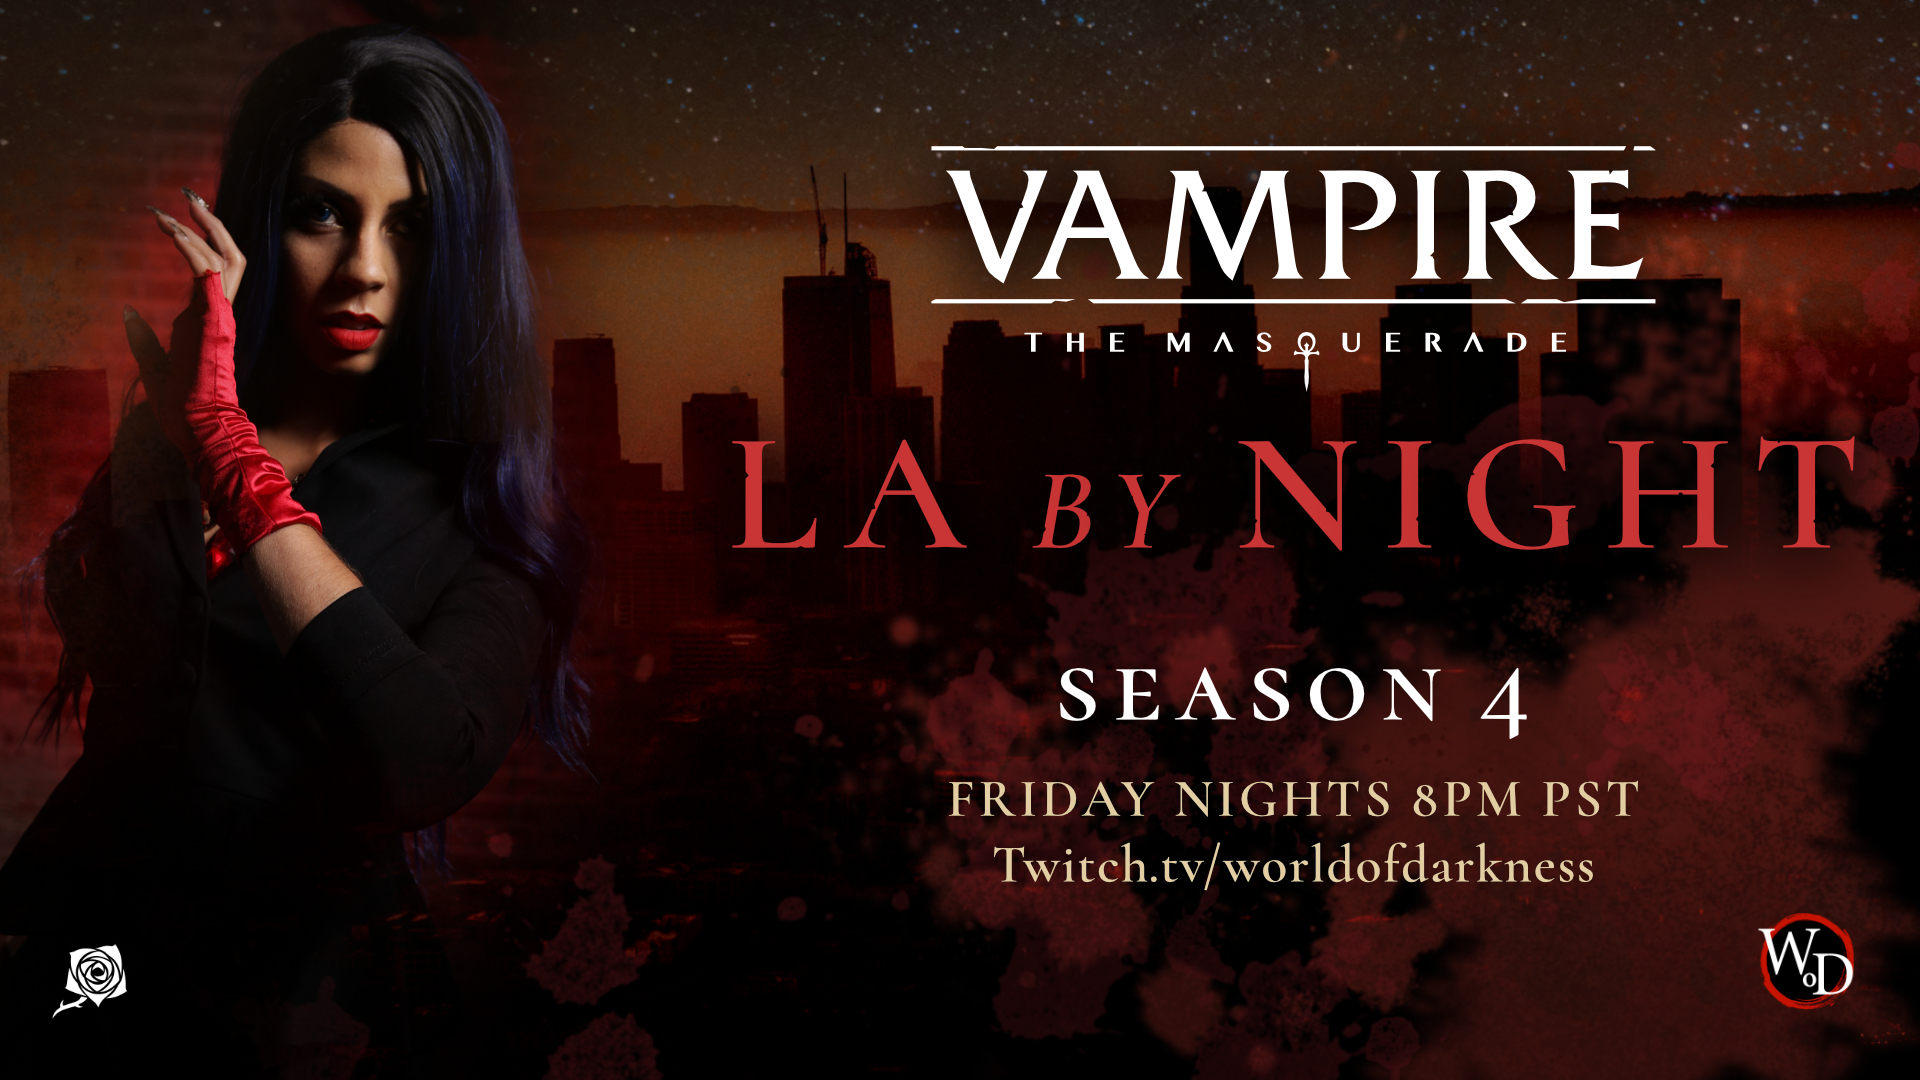 LA by Night Season 4 Kicks Off new World of Darkness streaming channel on Twitch!